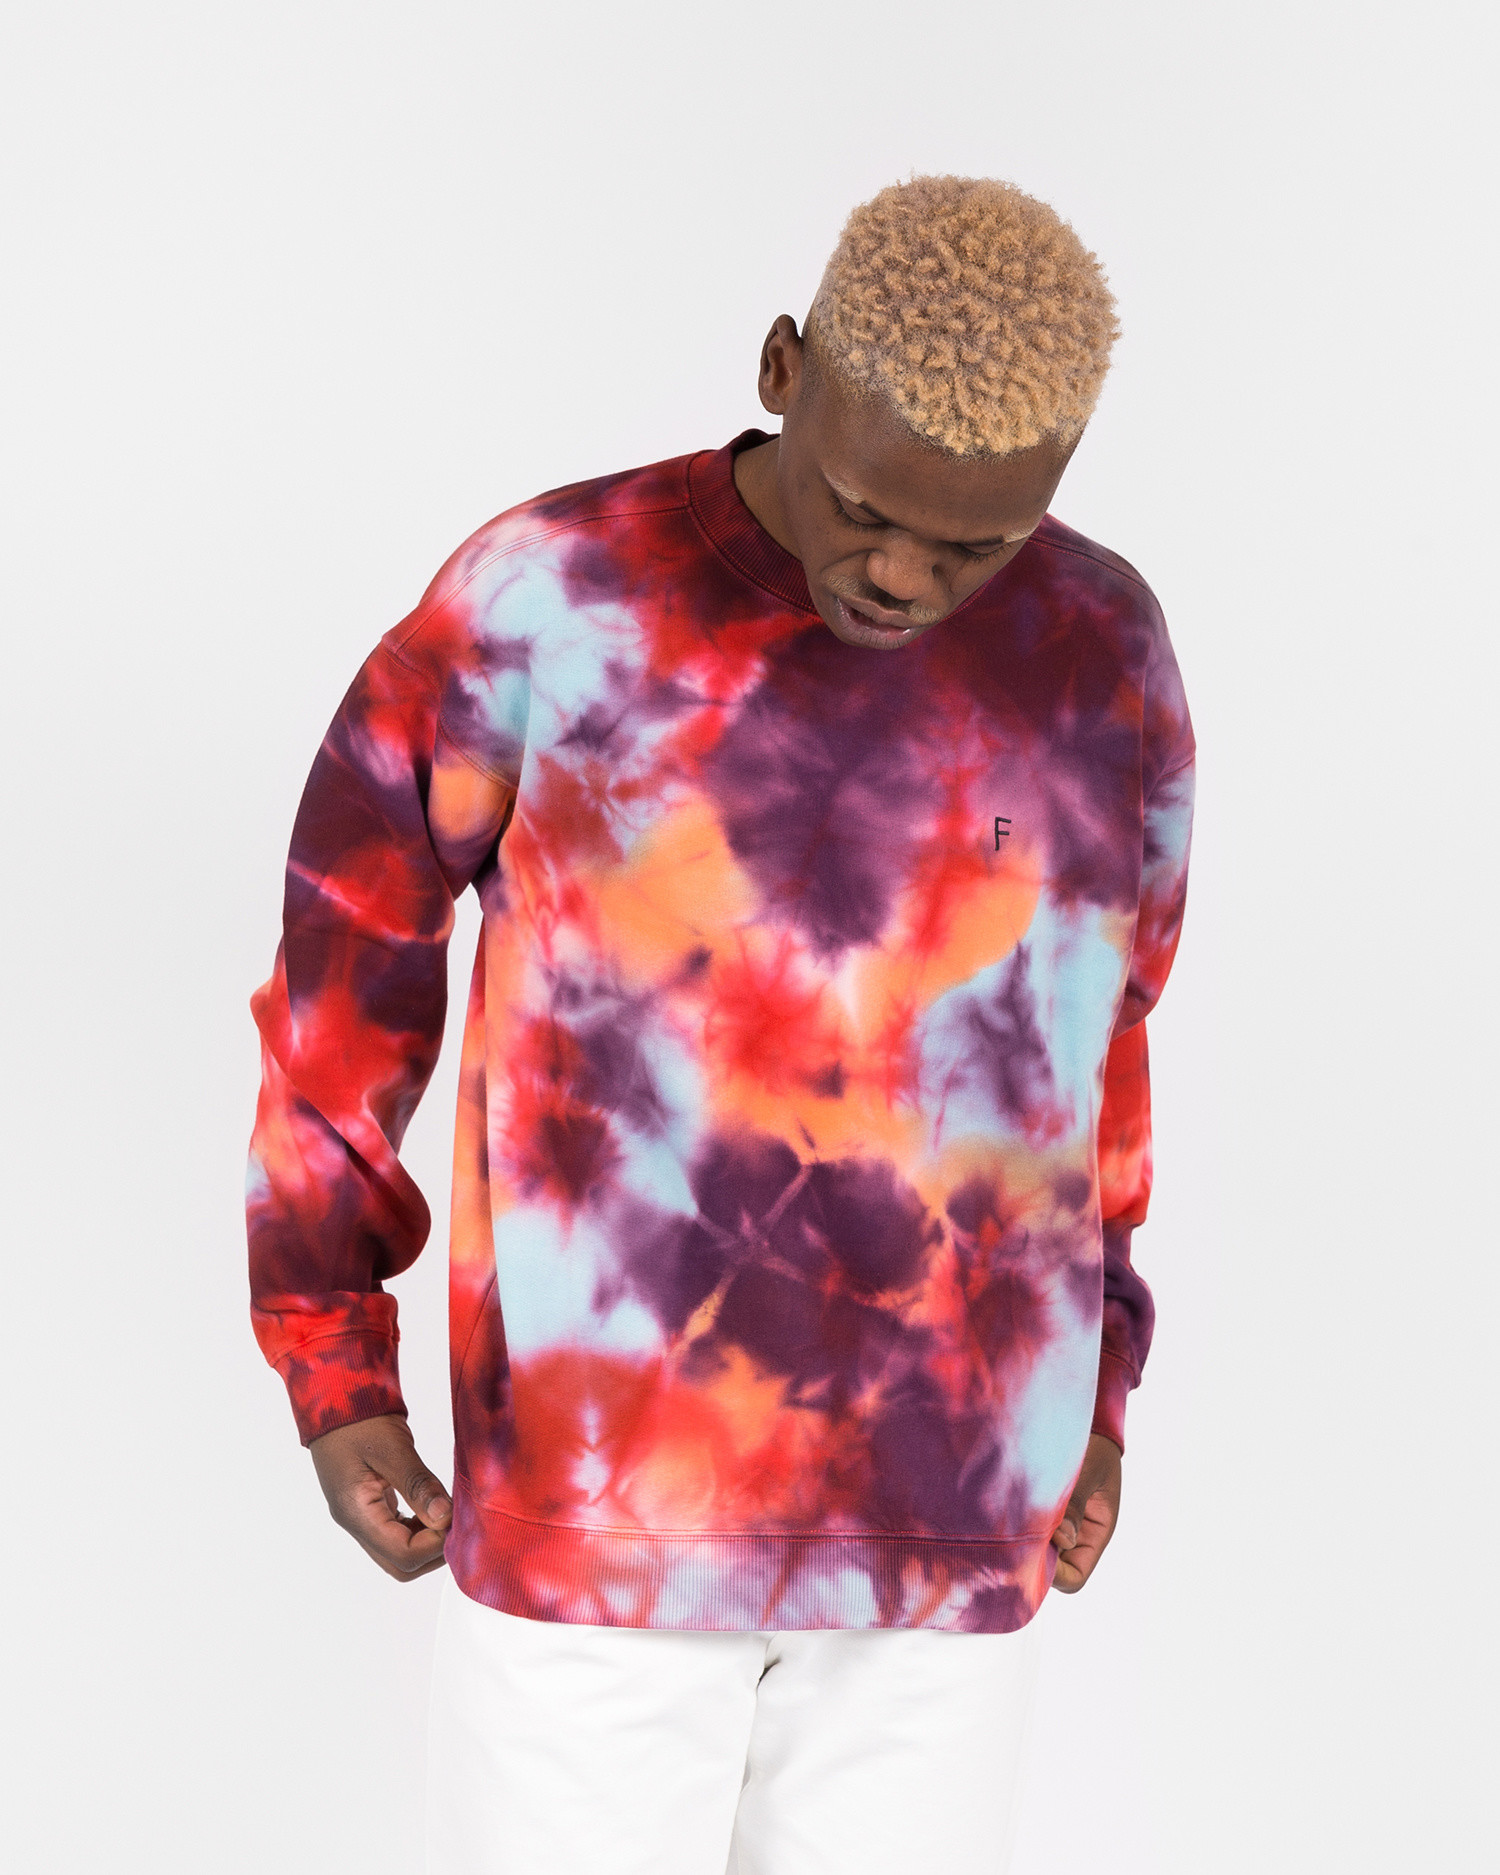 Futur 01Outline G Fit Crewneck Tie dye